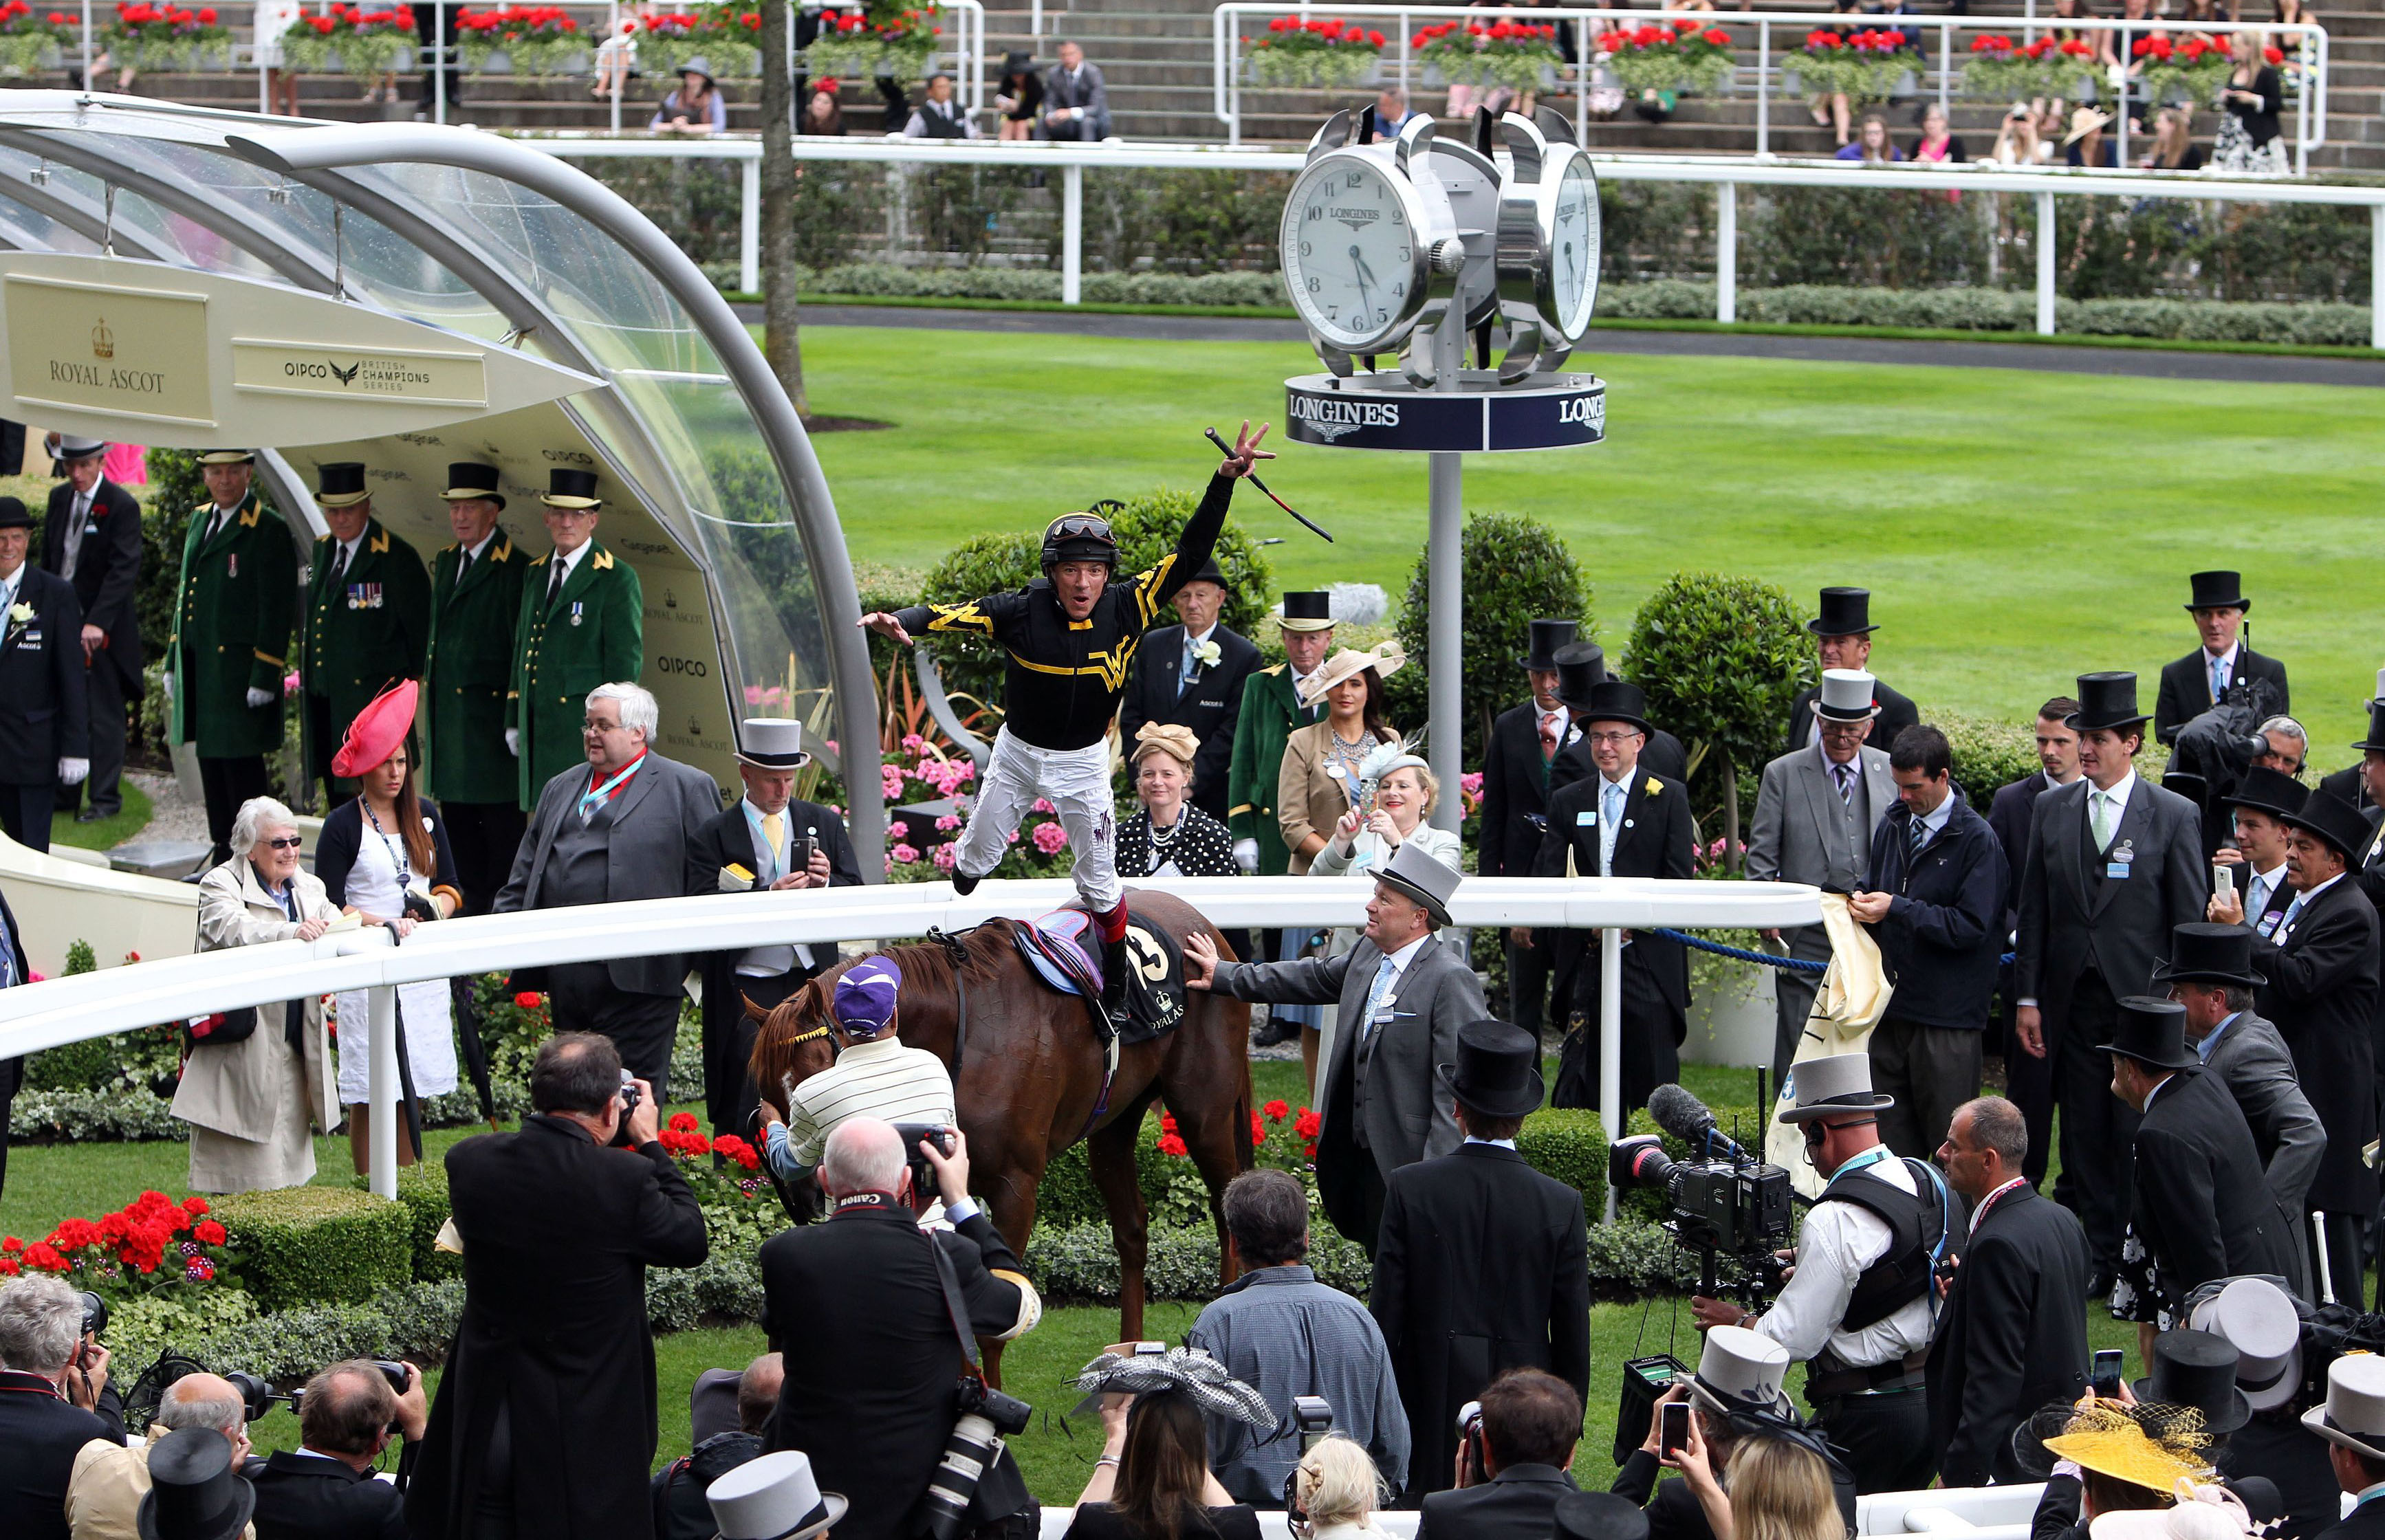 Jockey Frankie Dettori does his flying dismount, after winning the Diamond Jubilee Stakes with Undrafted, during day five of the 2015 Royal Ascot Meeting, at Ascot Racecourse, in Berkshire, England,  Saturday June 20, 2015. (Steve Parsons/PA, via AP) UNIT